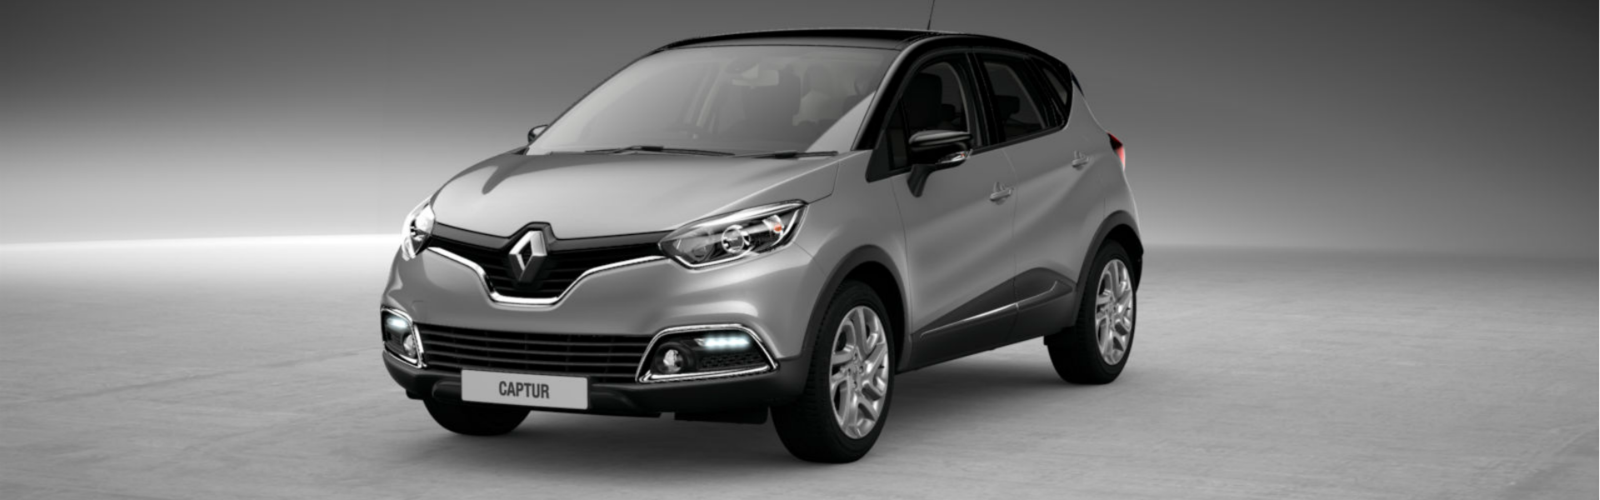 Renault Captur Colour Guide And Paint Prices Carwow